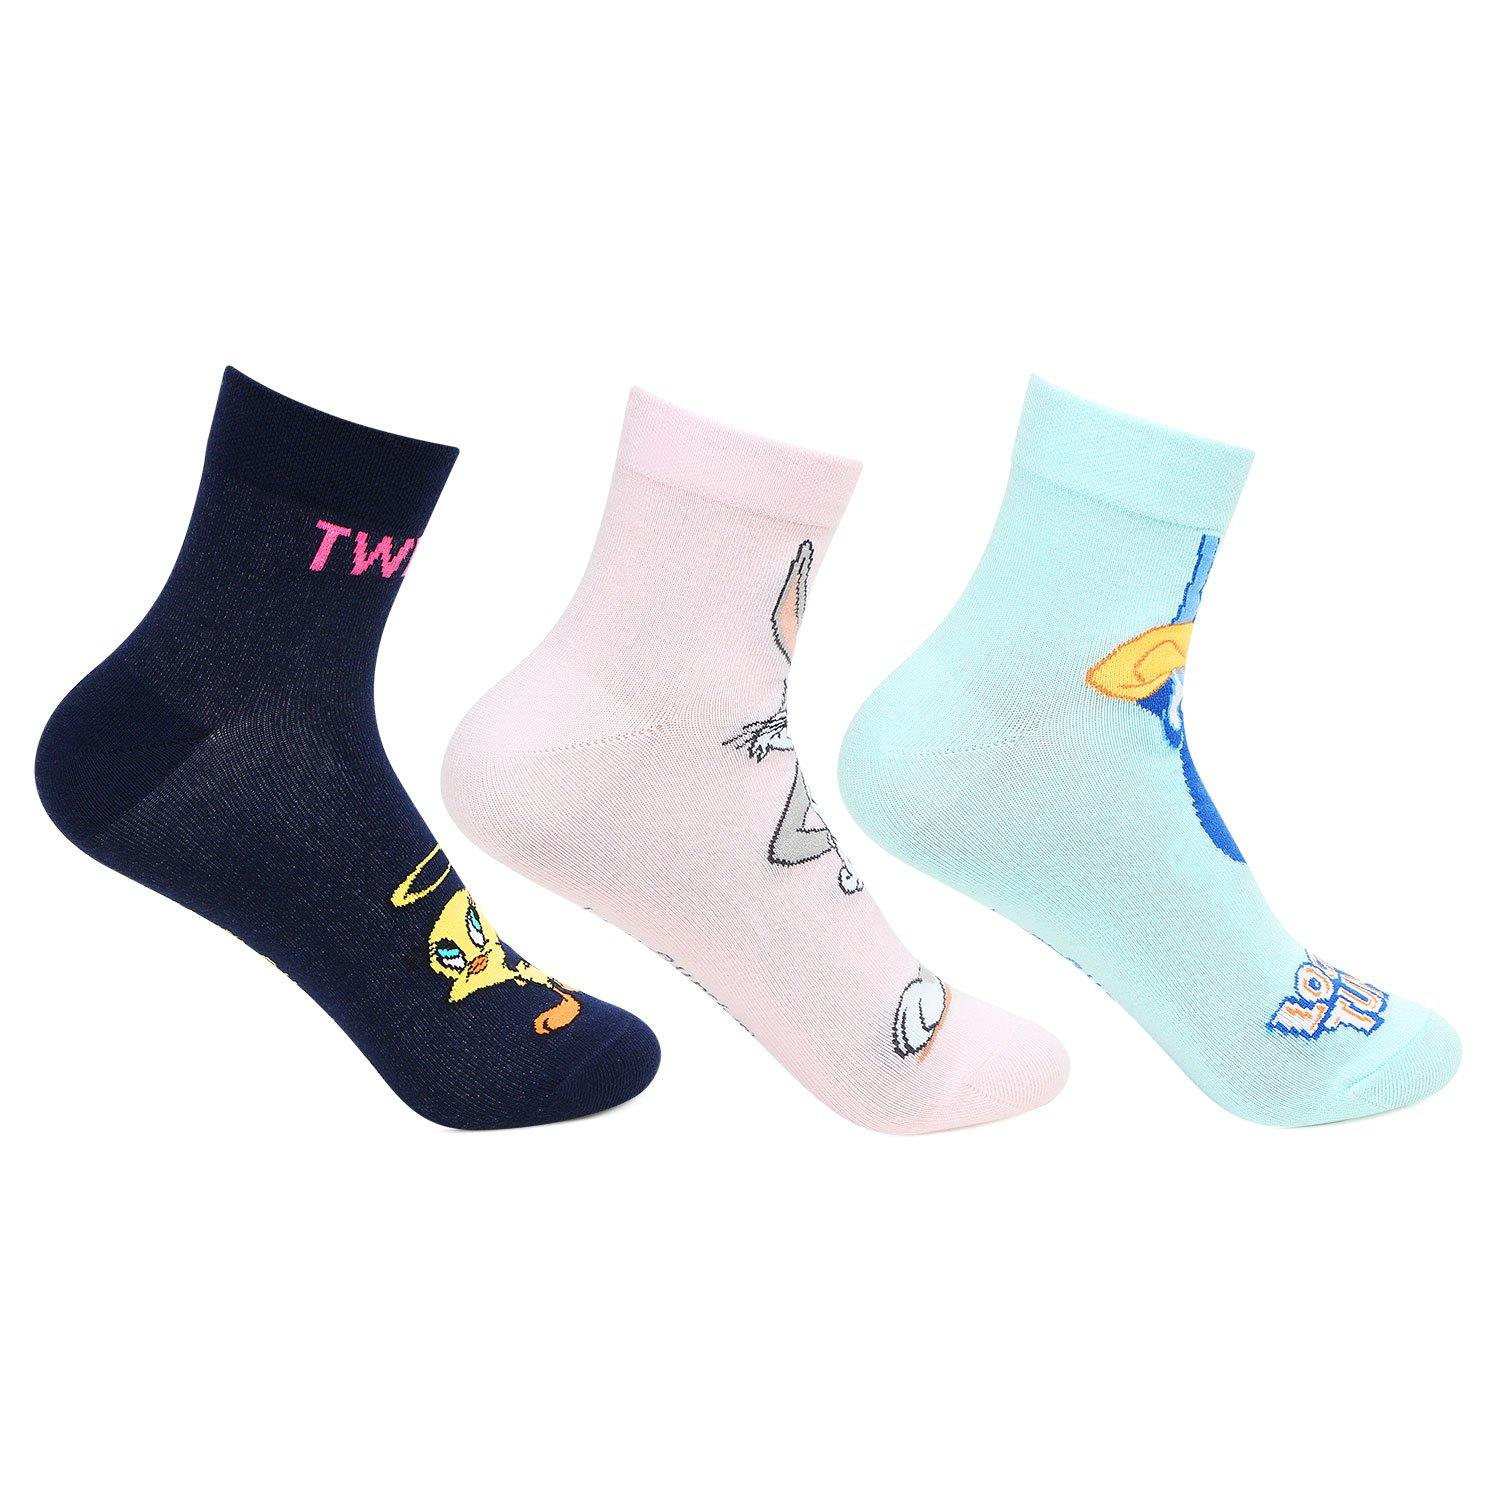 Looney Tunes Ankle Socks for Women - Pack of 3